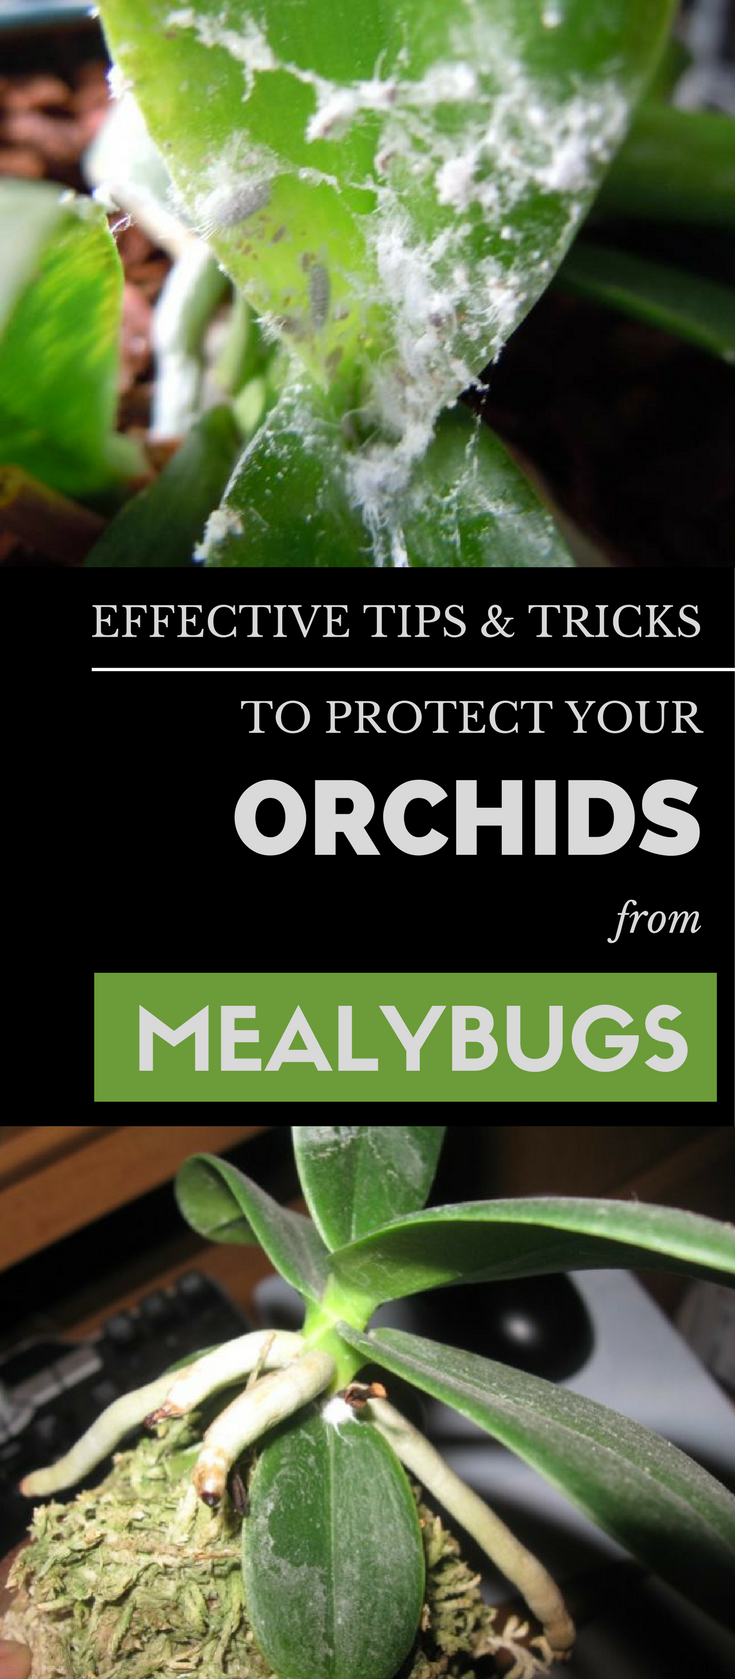 Effective Tips & Tricks to Protect Your Orchids From